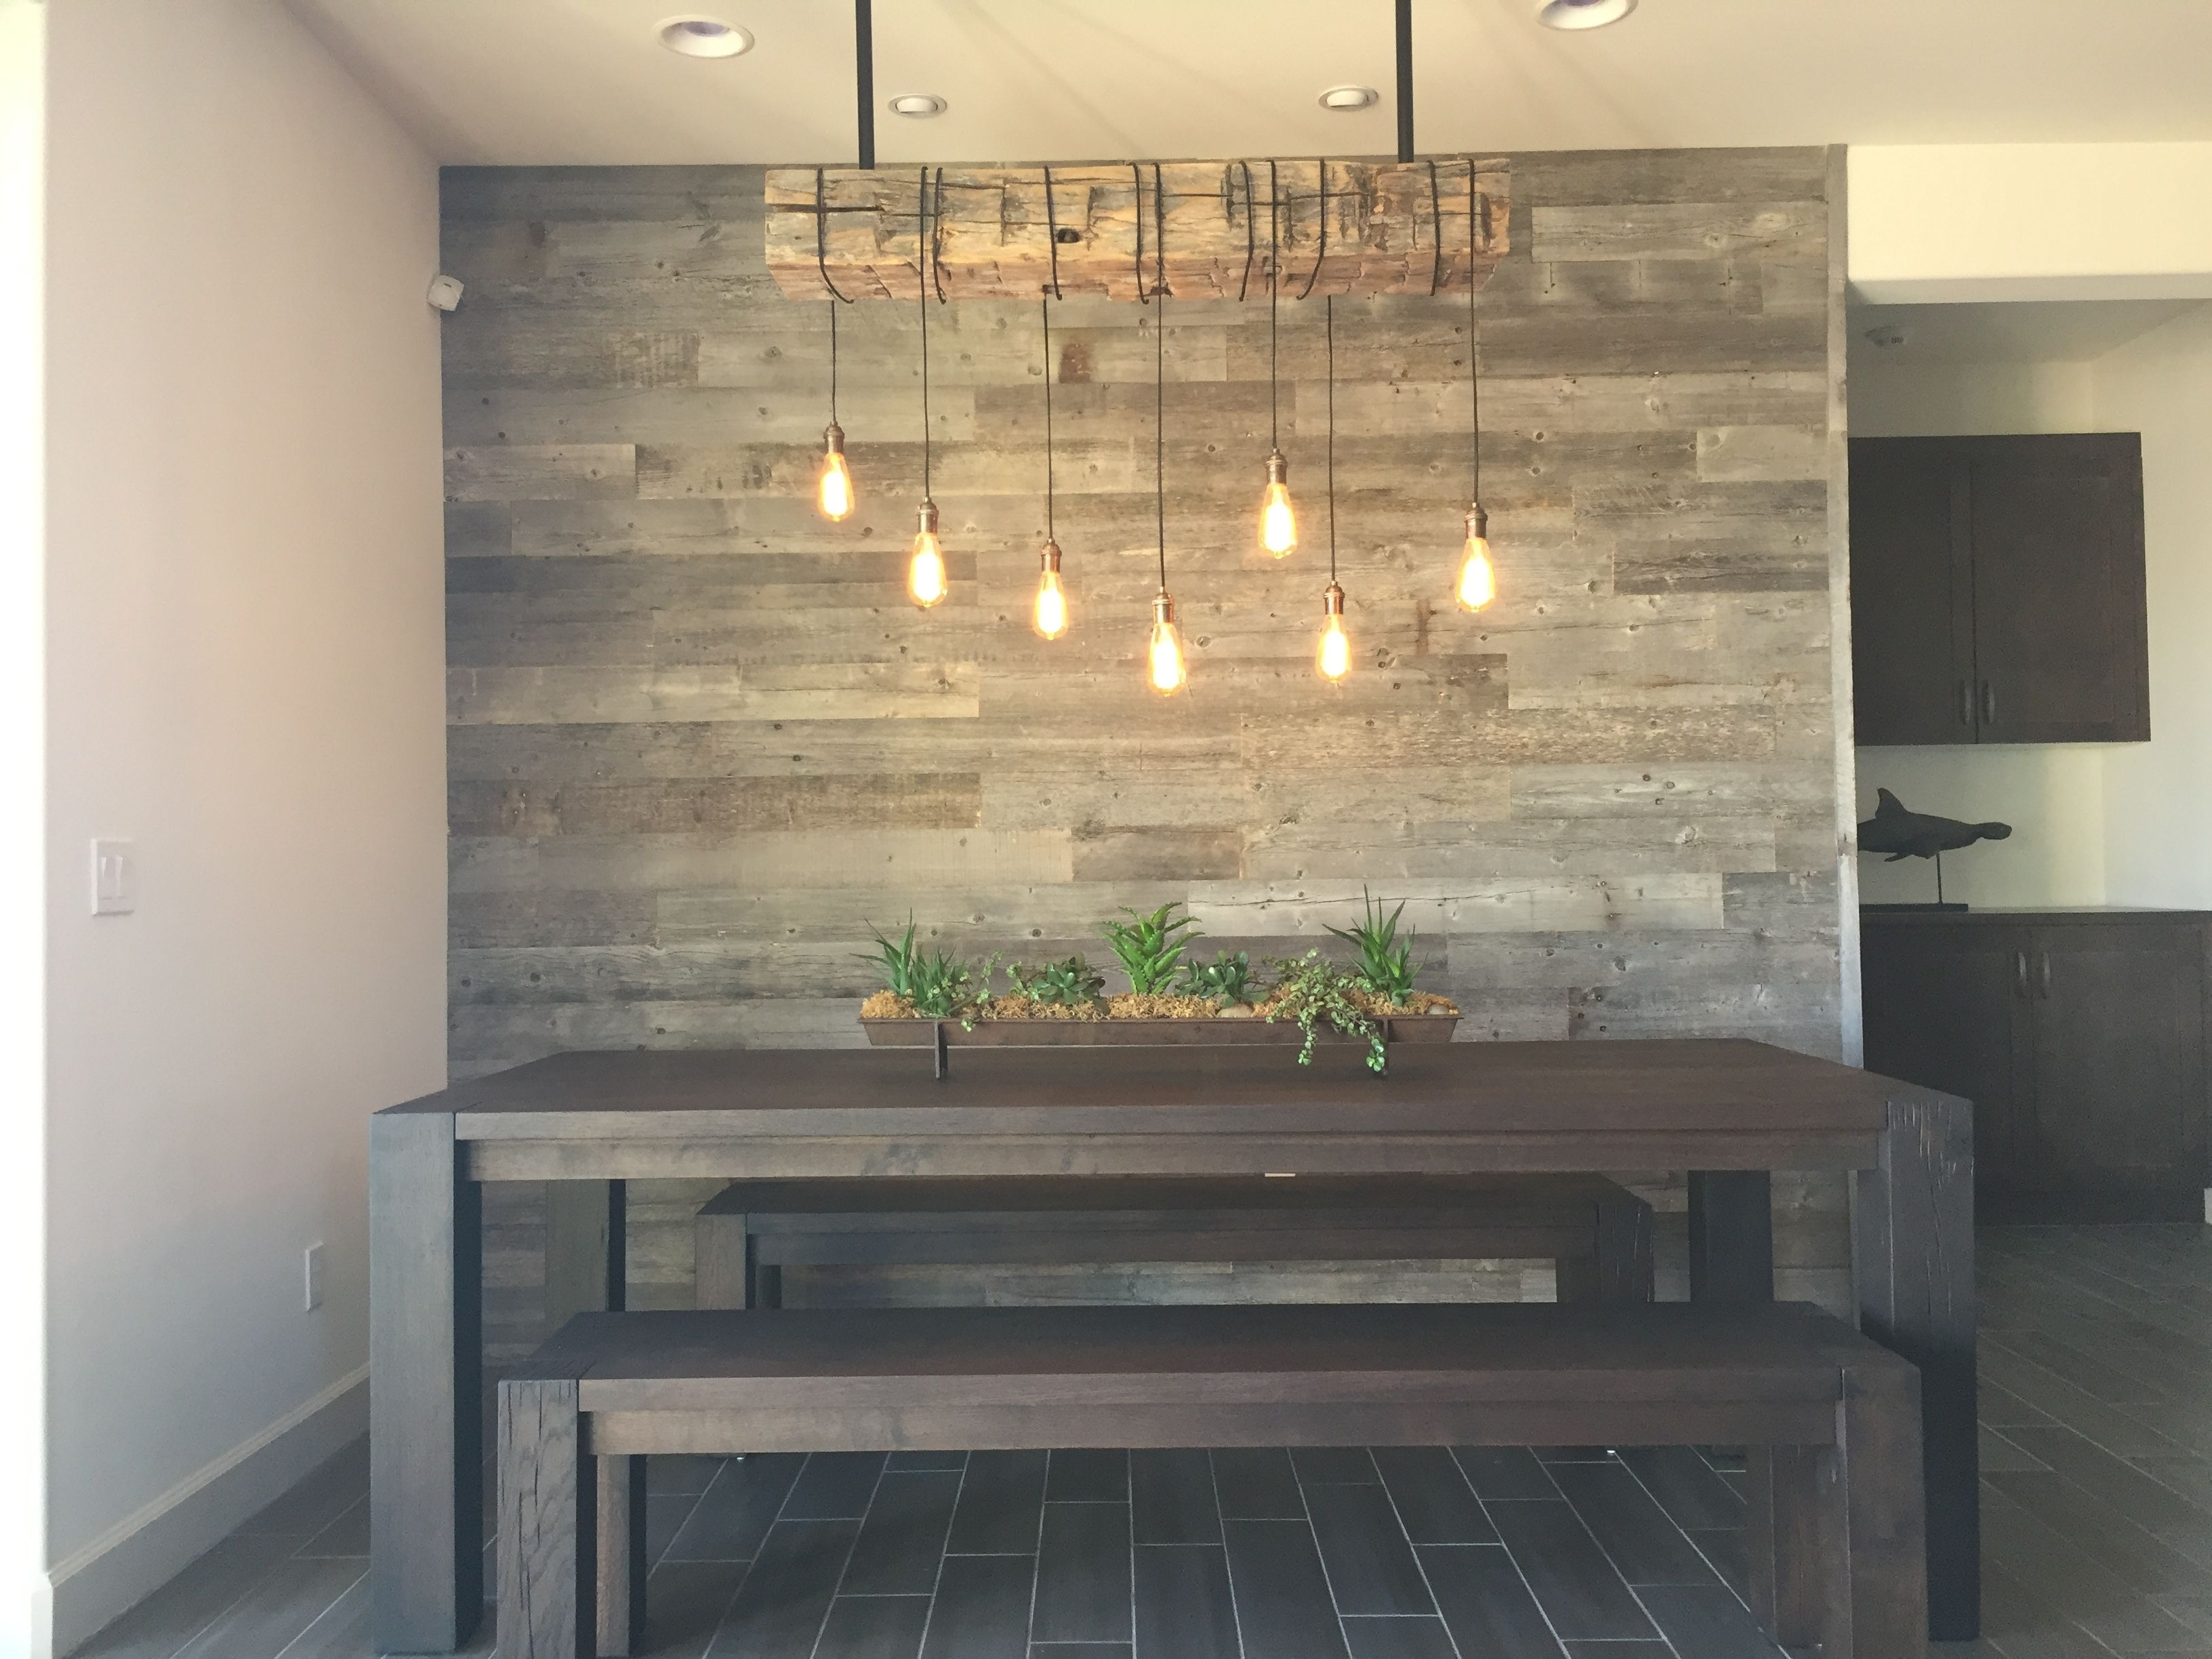 19 Awesome Accent Wall Ideas To Transform Your Living Room | Wall Inside Most Recently Released Reclaimed Wood Wall Accents (View 7 of 15)